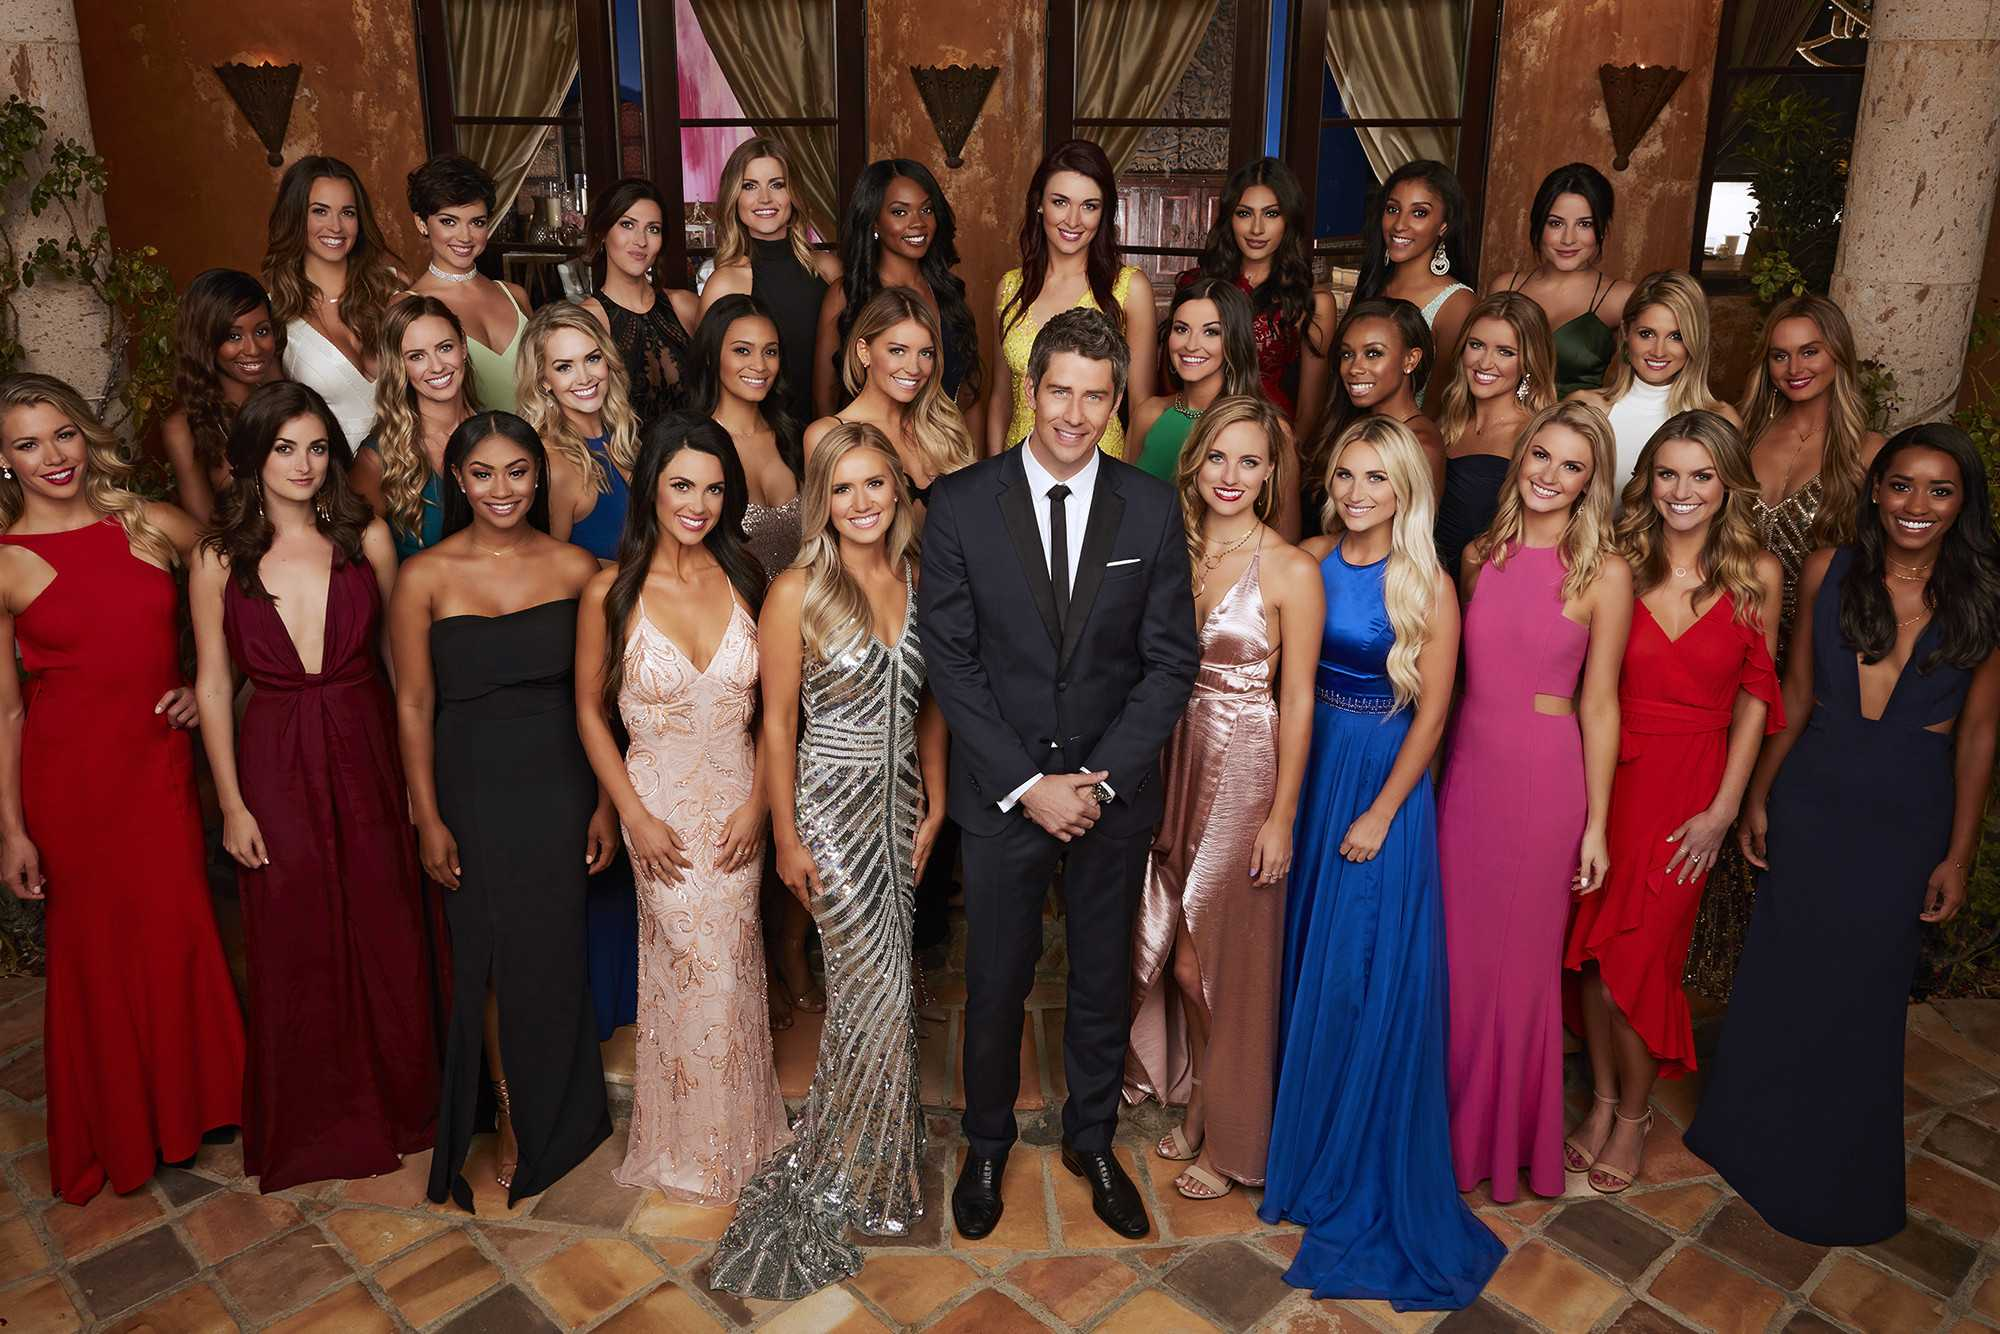 Photo of the Bachelor Cast